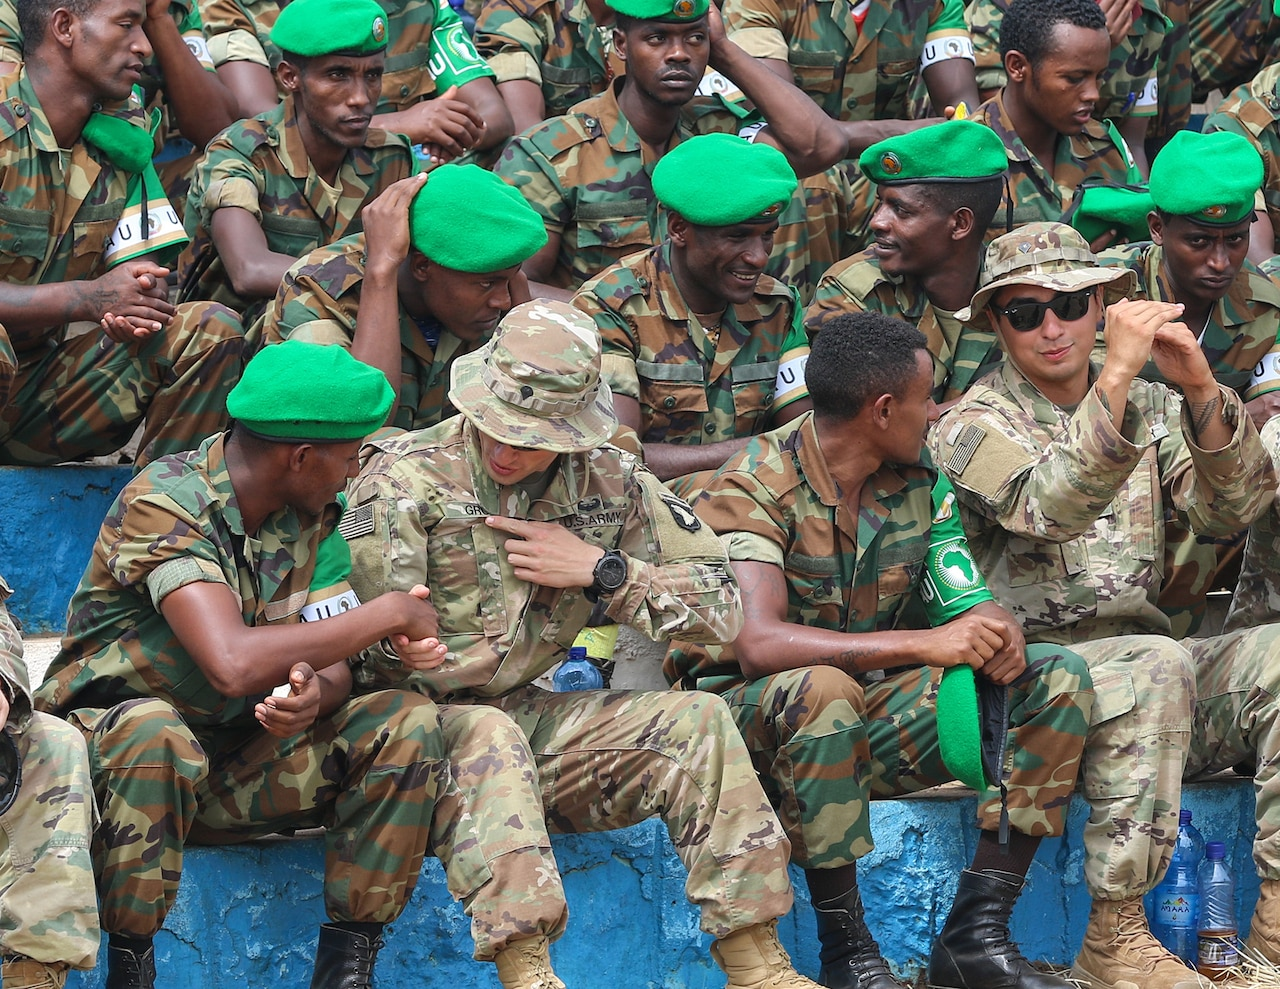 Soldiers in camouflage uniforms, some wearing bright green berets, talk while sitting in bleachers.